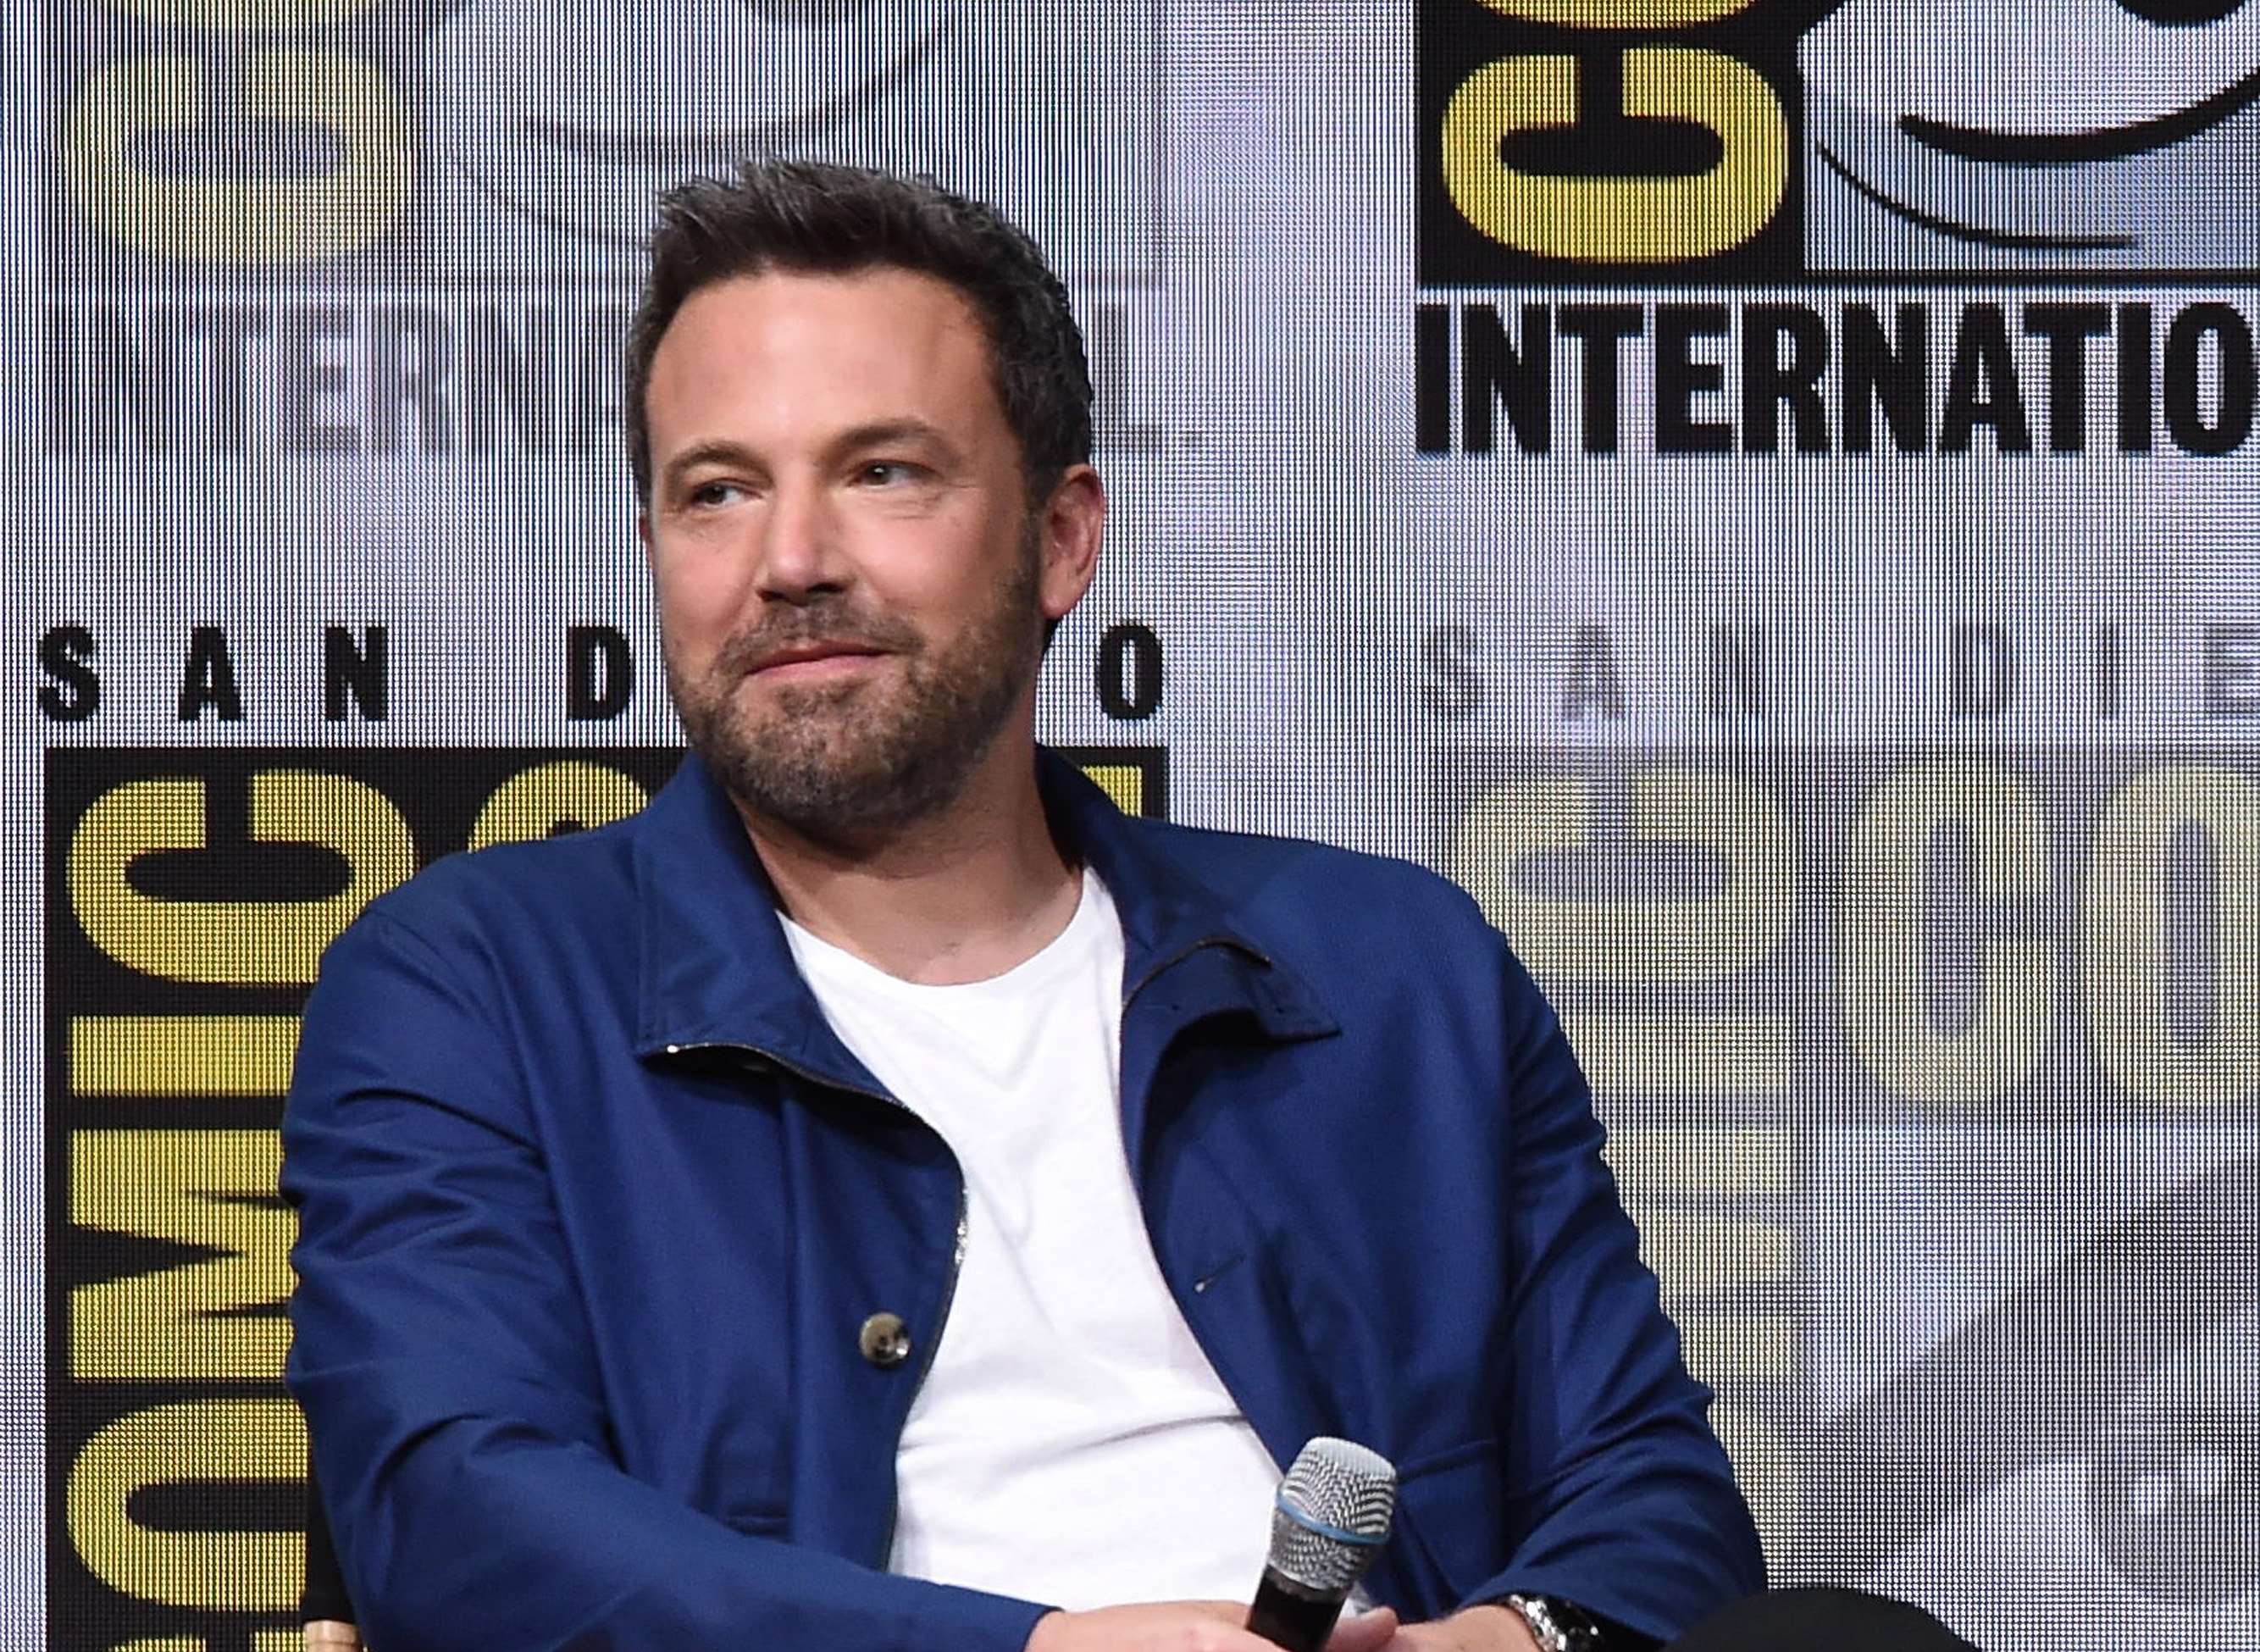 "Ben Affleck just addressed those Batman rumors, mentions like 15 times ""I'm Batman"""